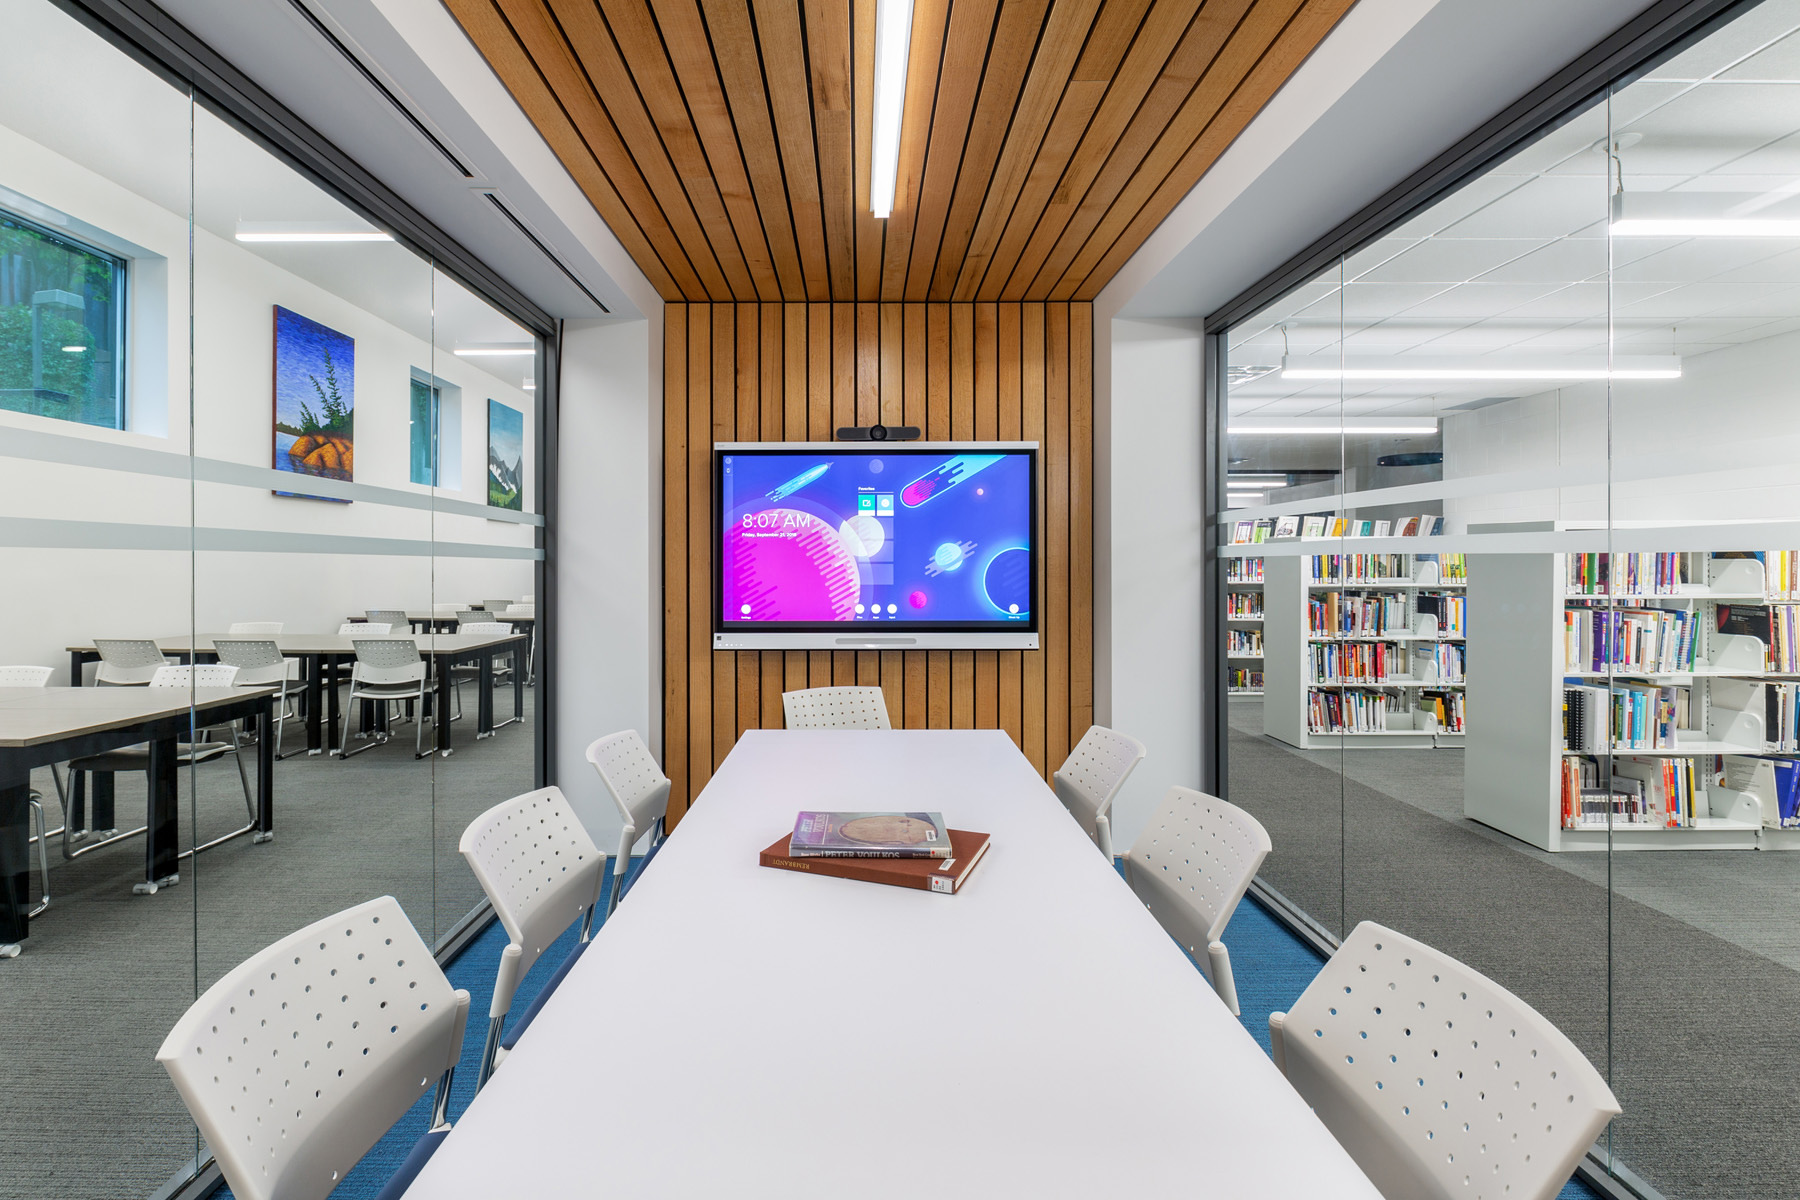 Glazed meeting room with white table and chairs, wood plank floor and ceiling feature and tv screen, with bookshelves on right